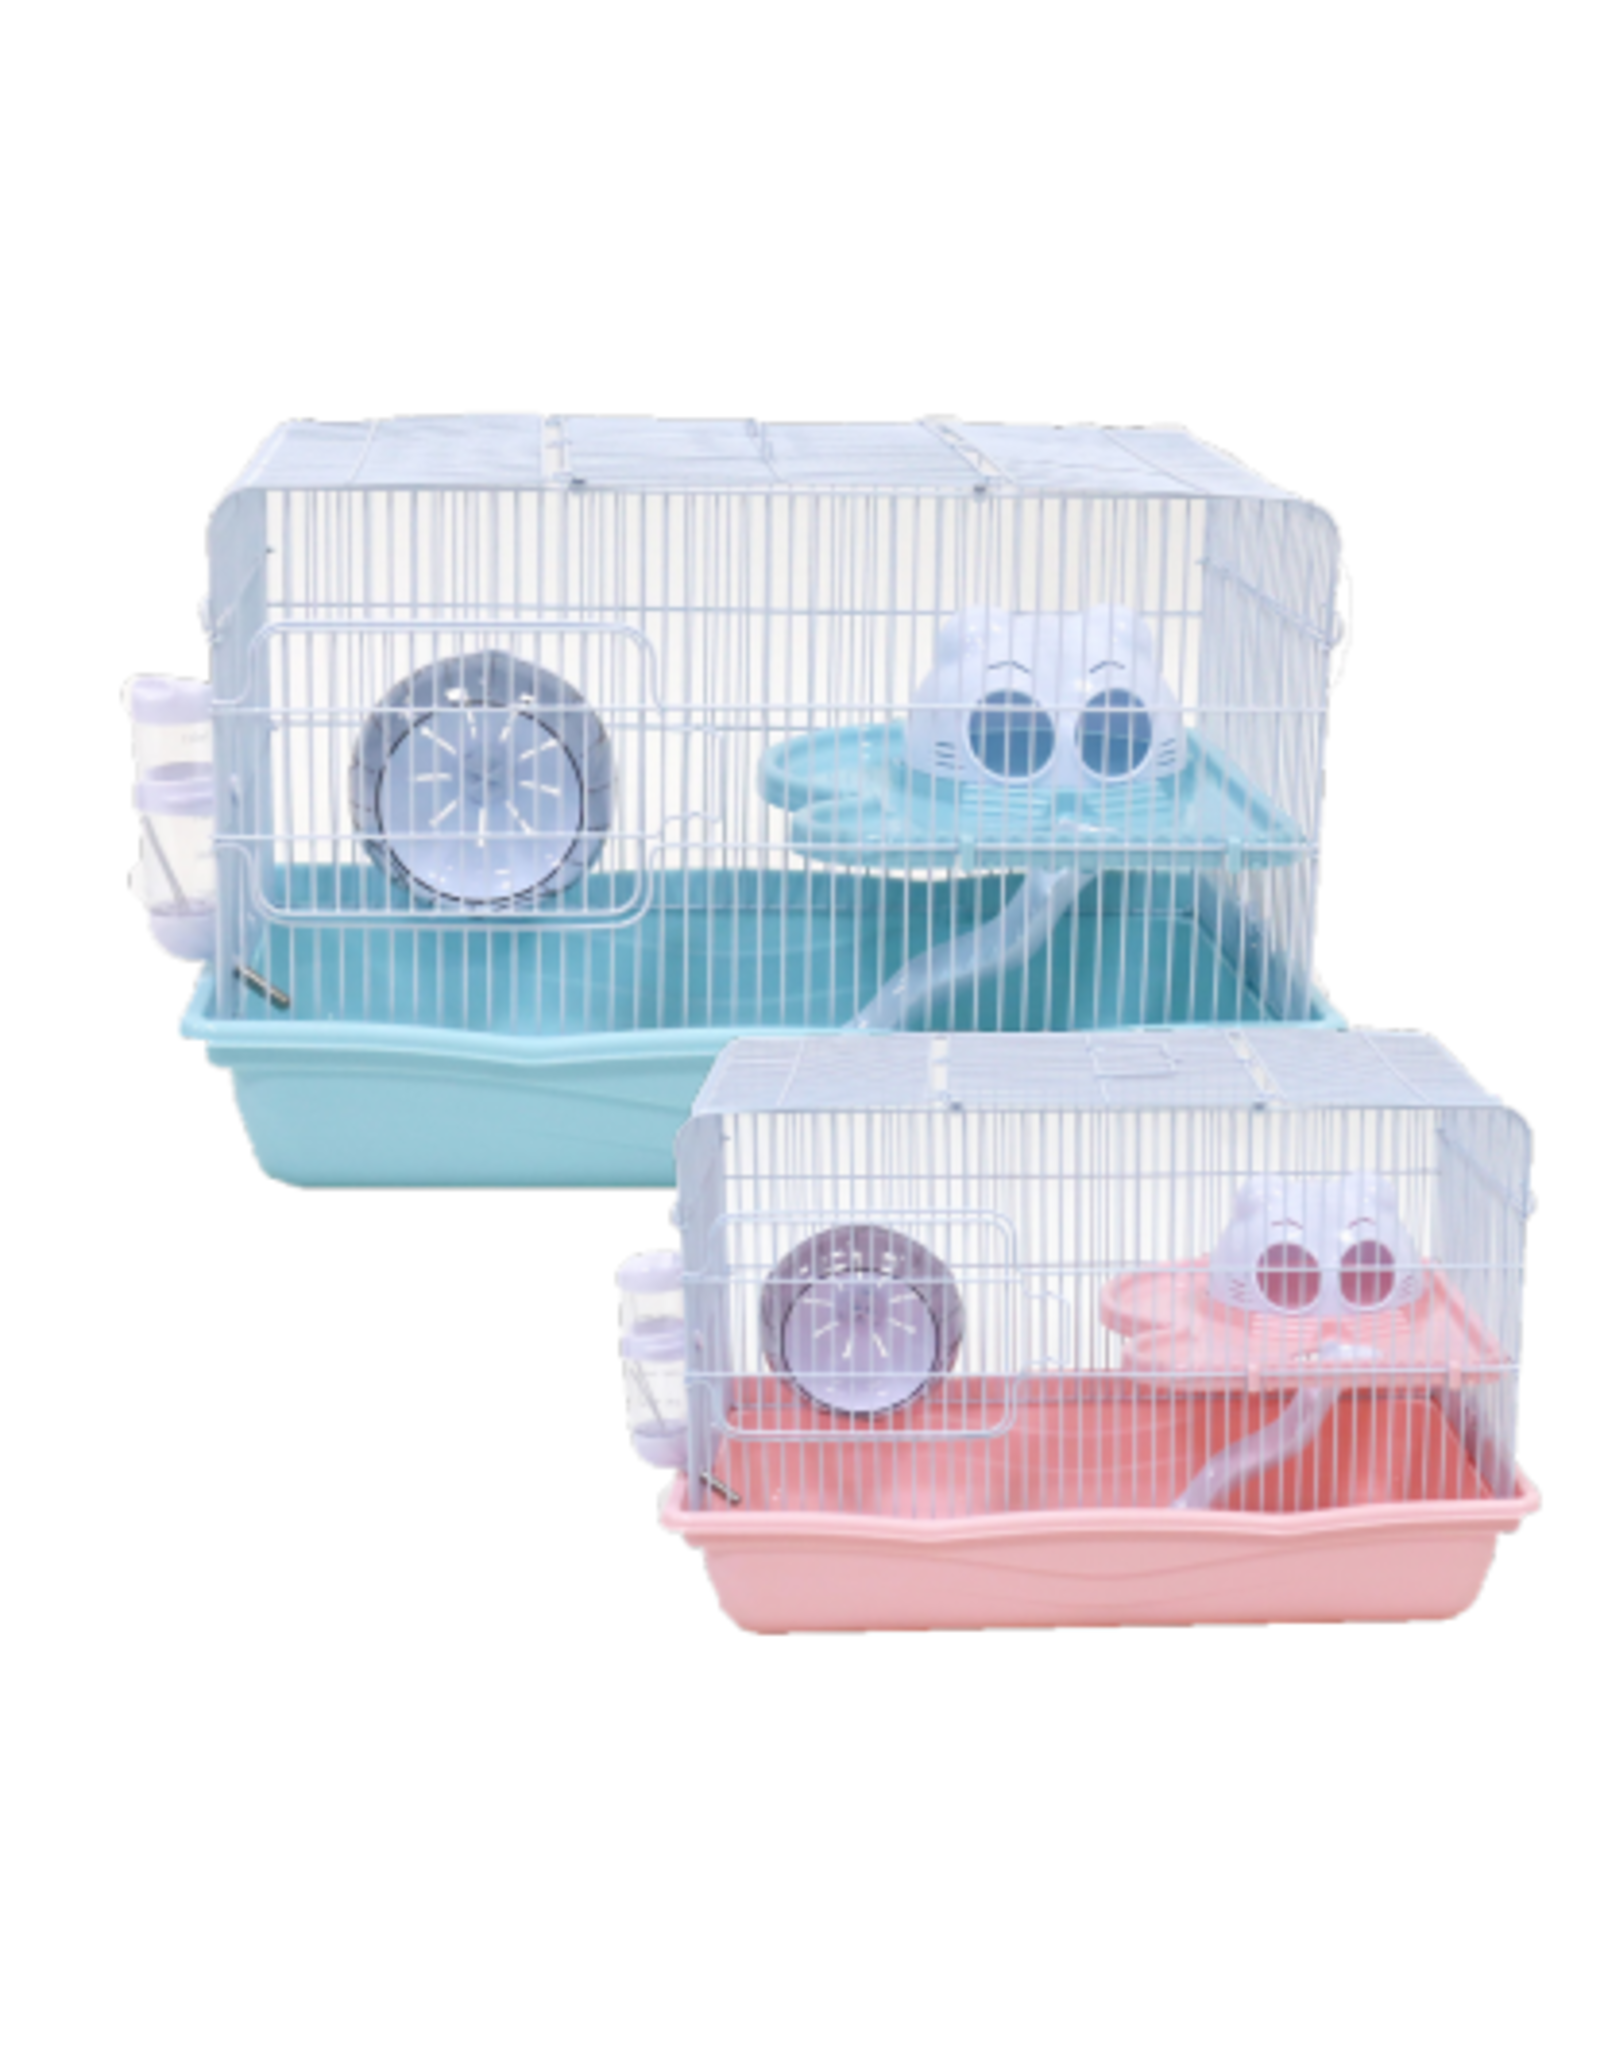 Sky Pet Products Harry Cage Blue